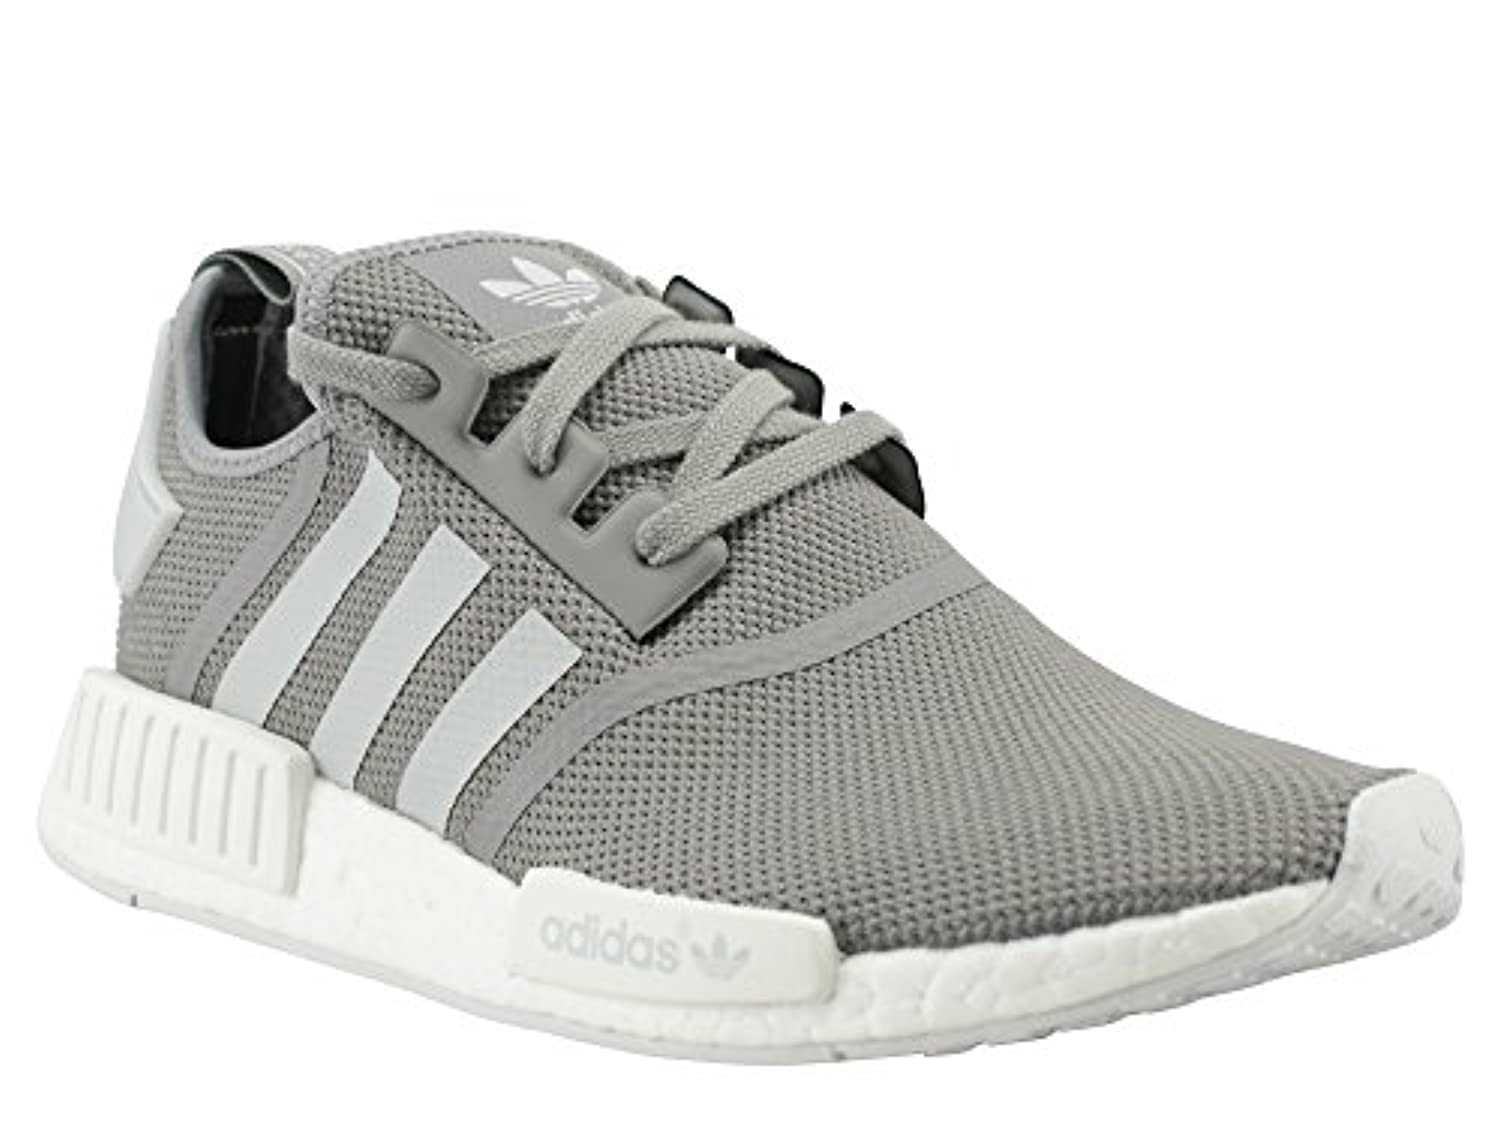 Adidas Mens NMD R1 Grey Trainer Size 8.5 UK